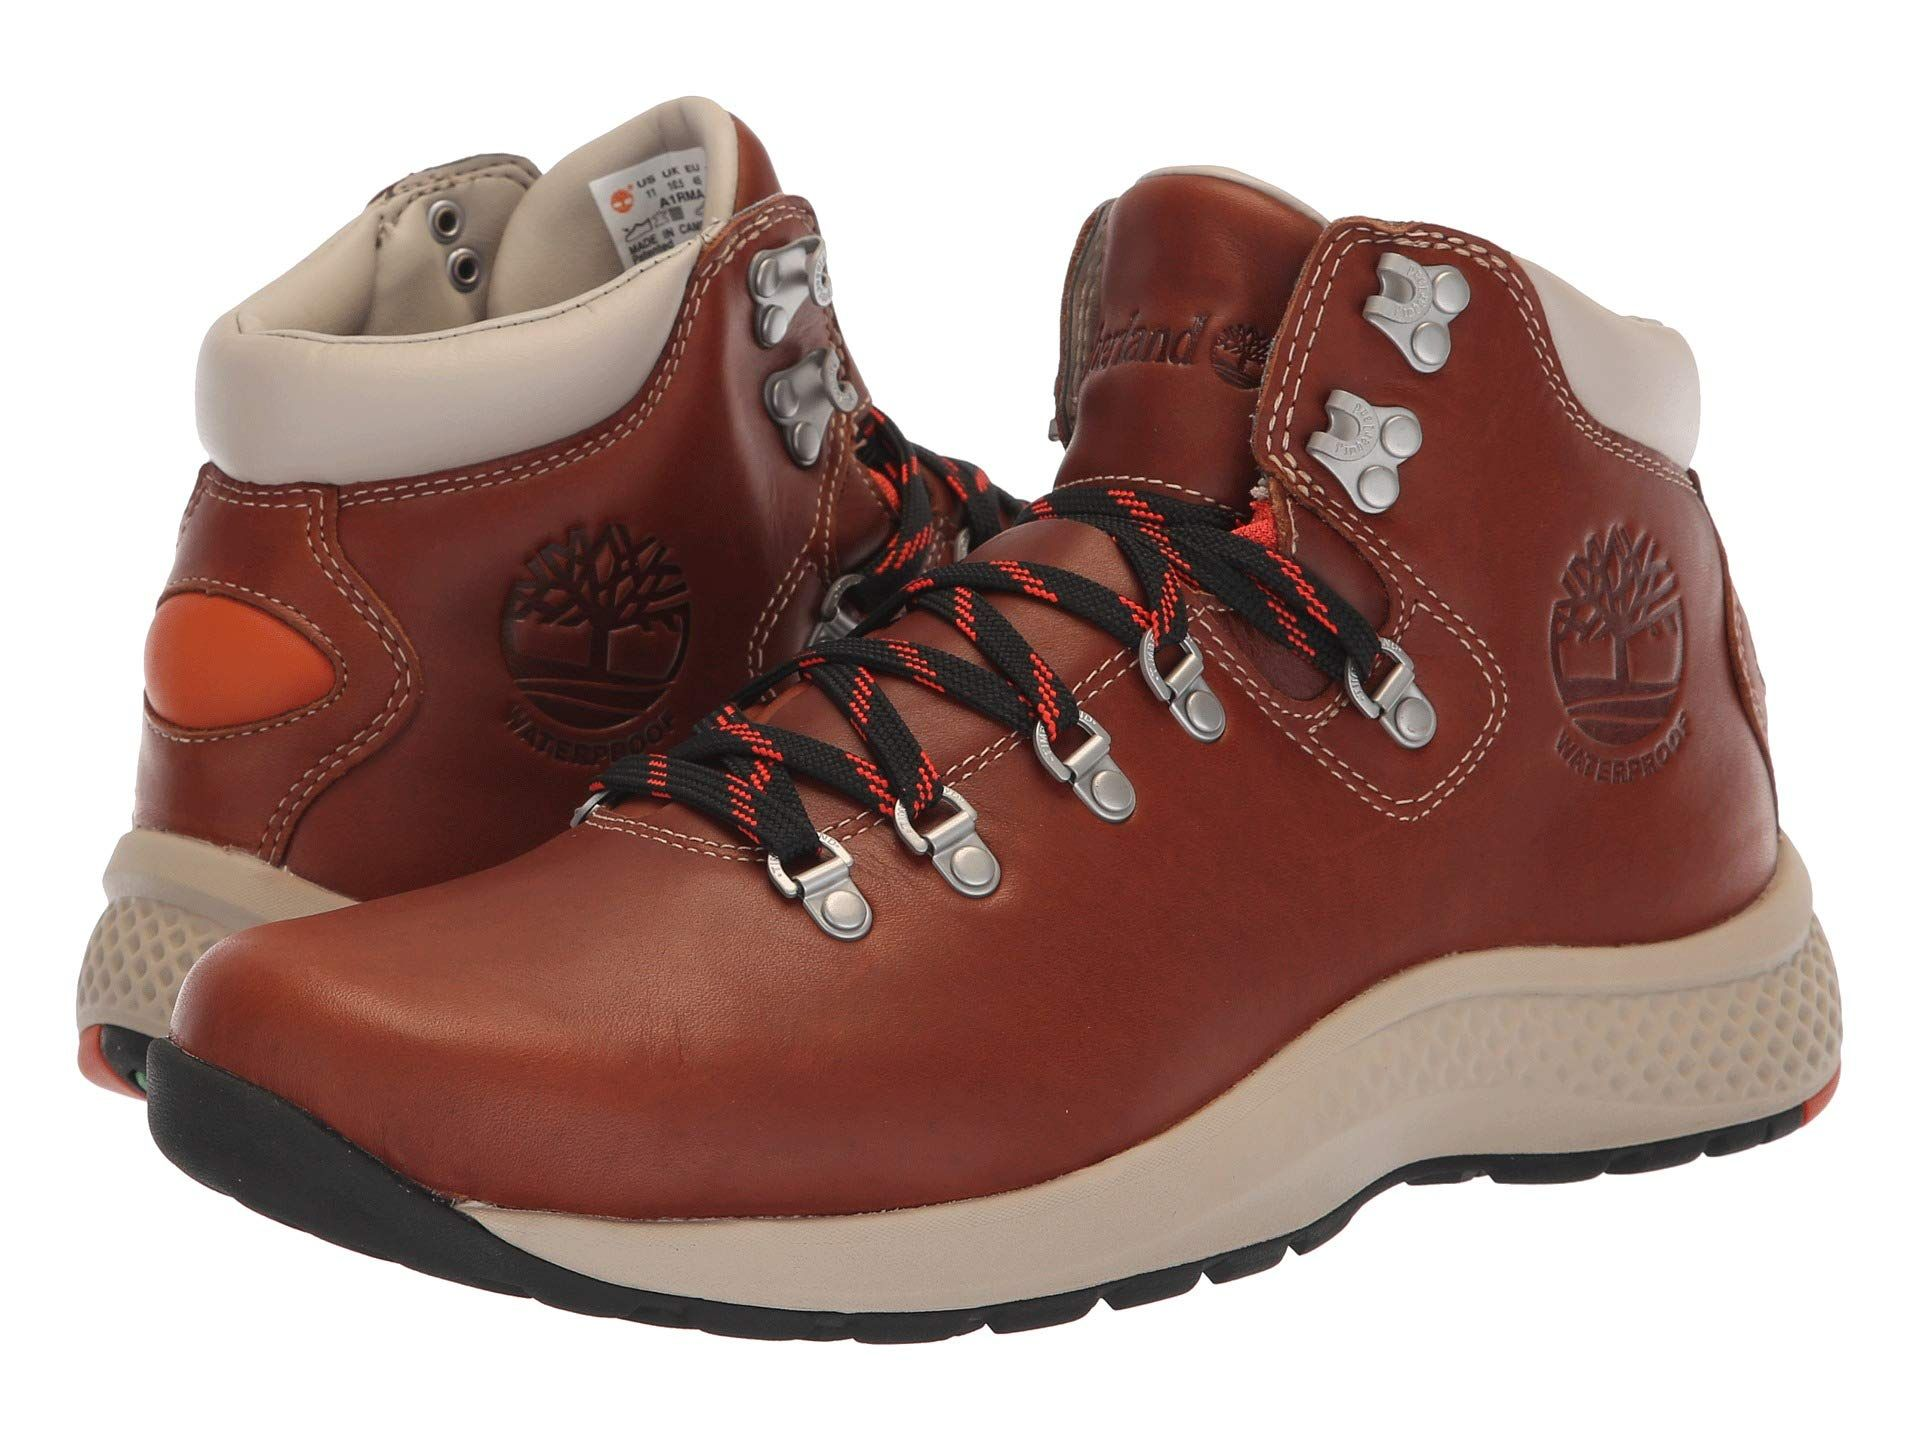 f6c63ab525d7 10 Best Hiking Boots and Shoes to Take On Any Trail or Trek